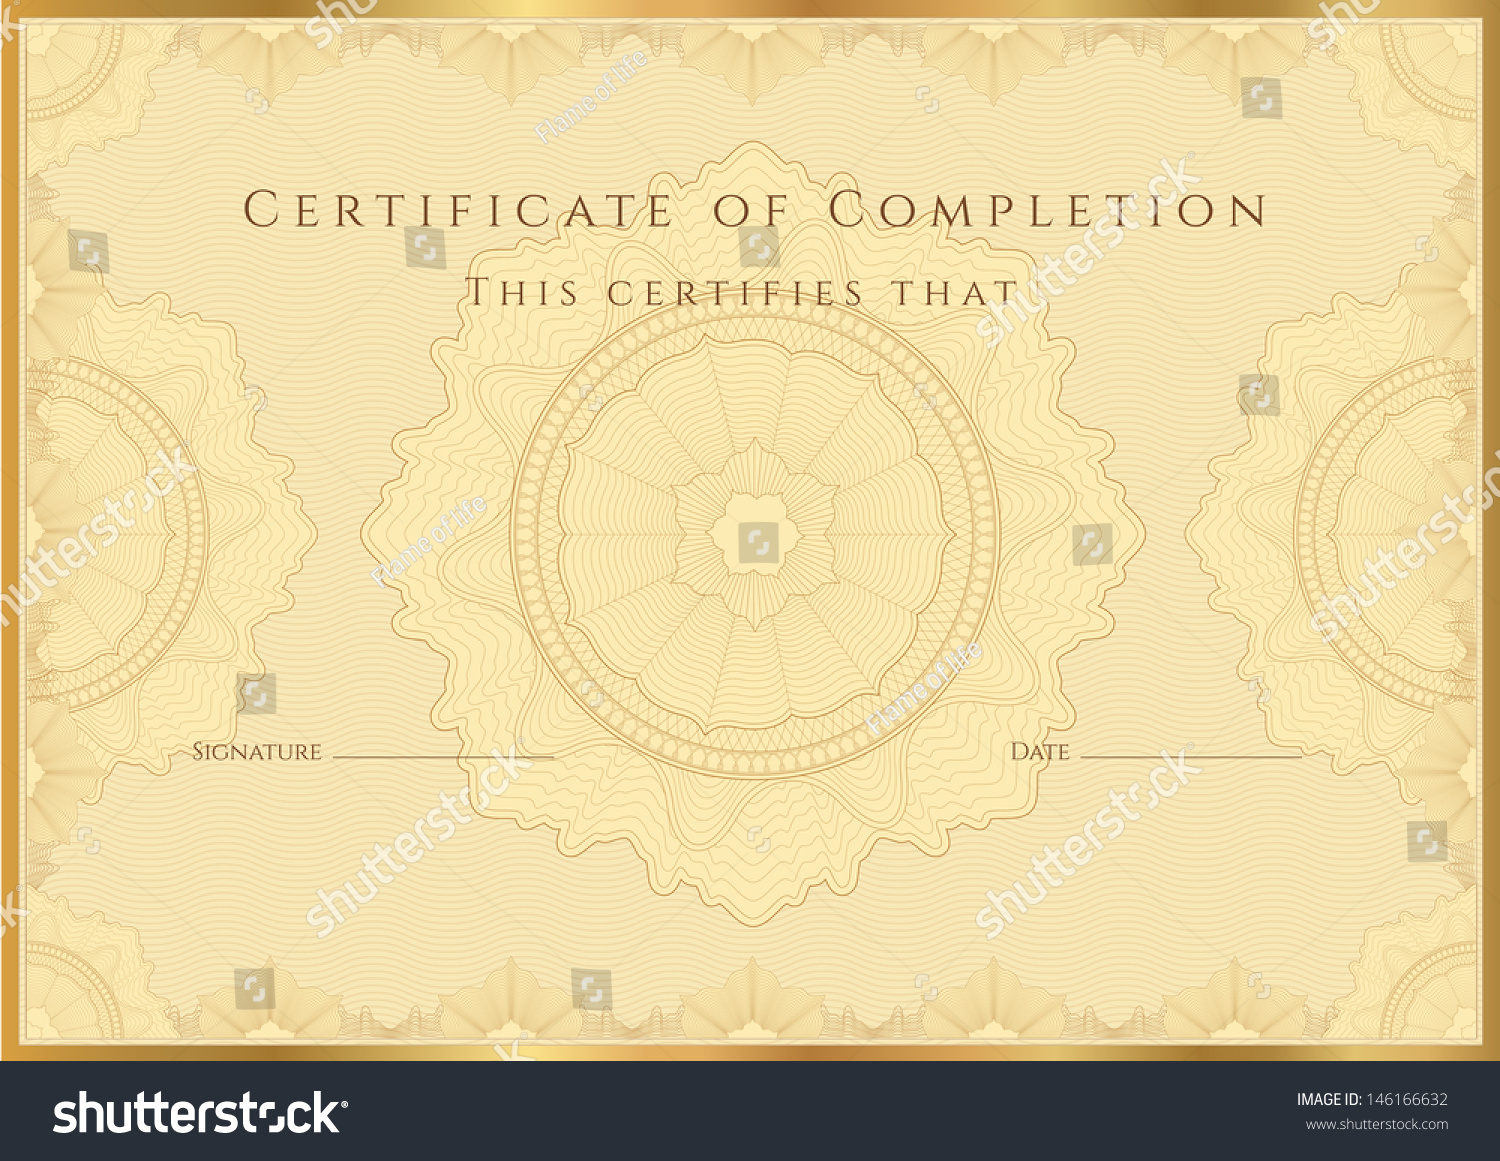 Gold Certificate Completion Template Sample Background – Certificate of Completion Sample